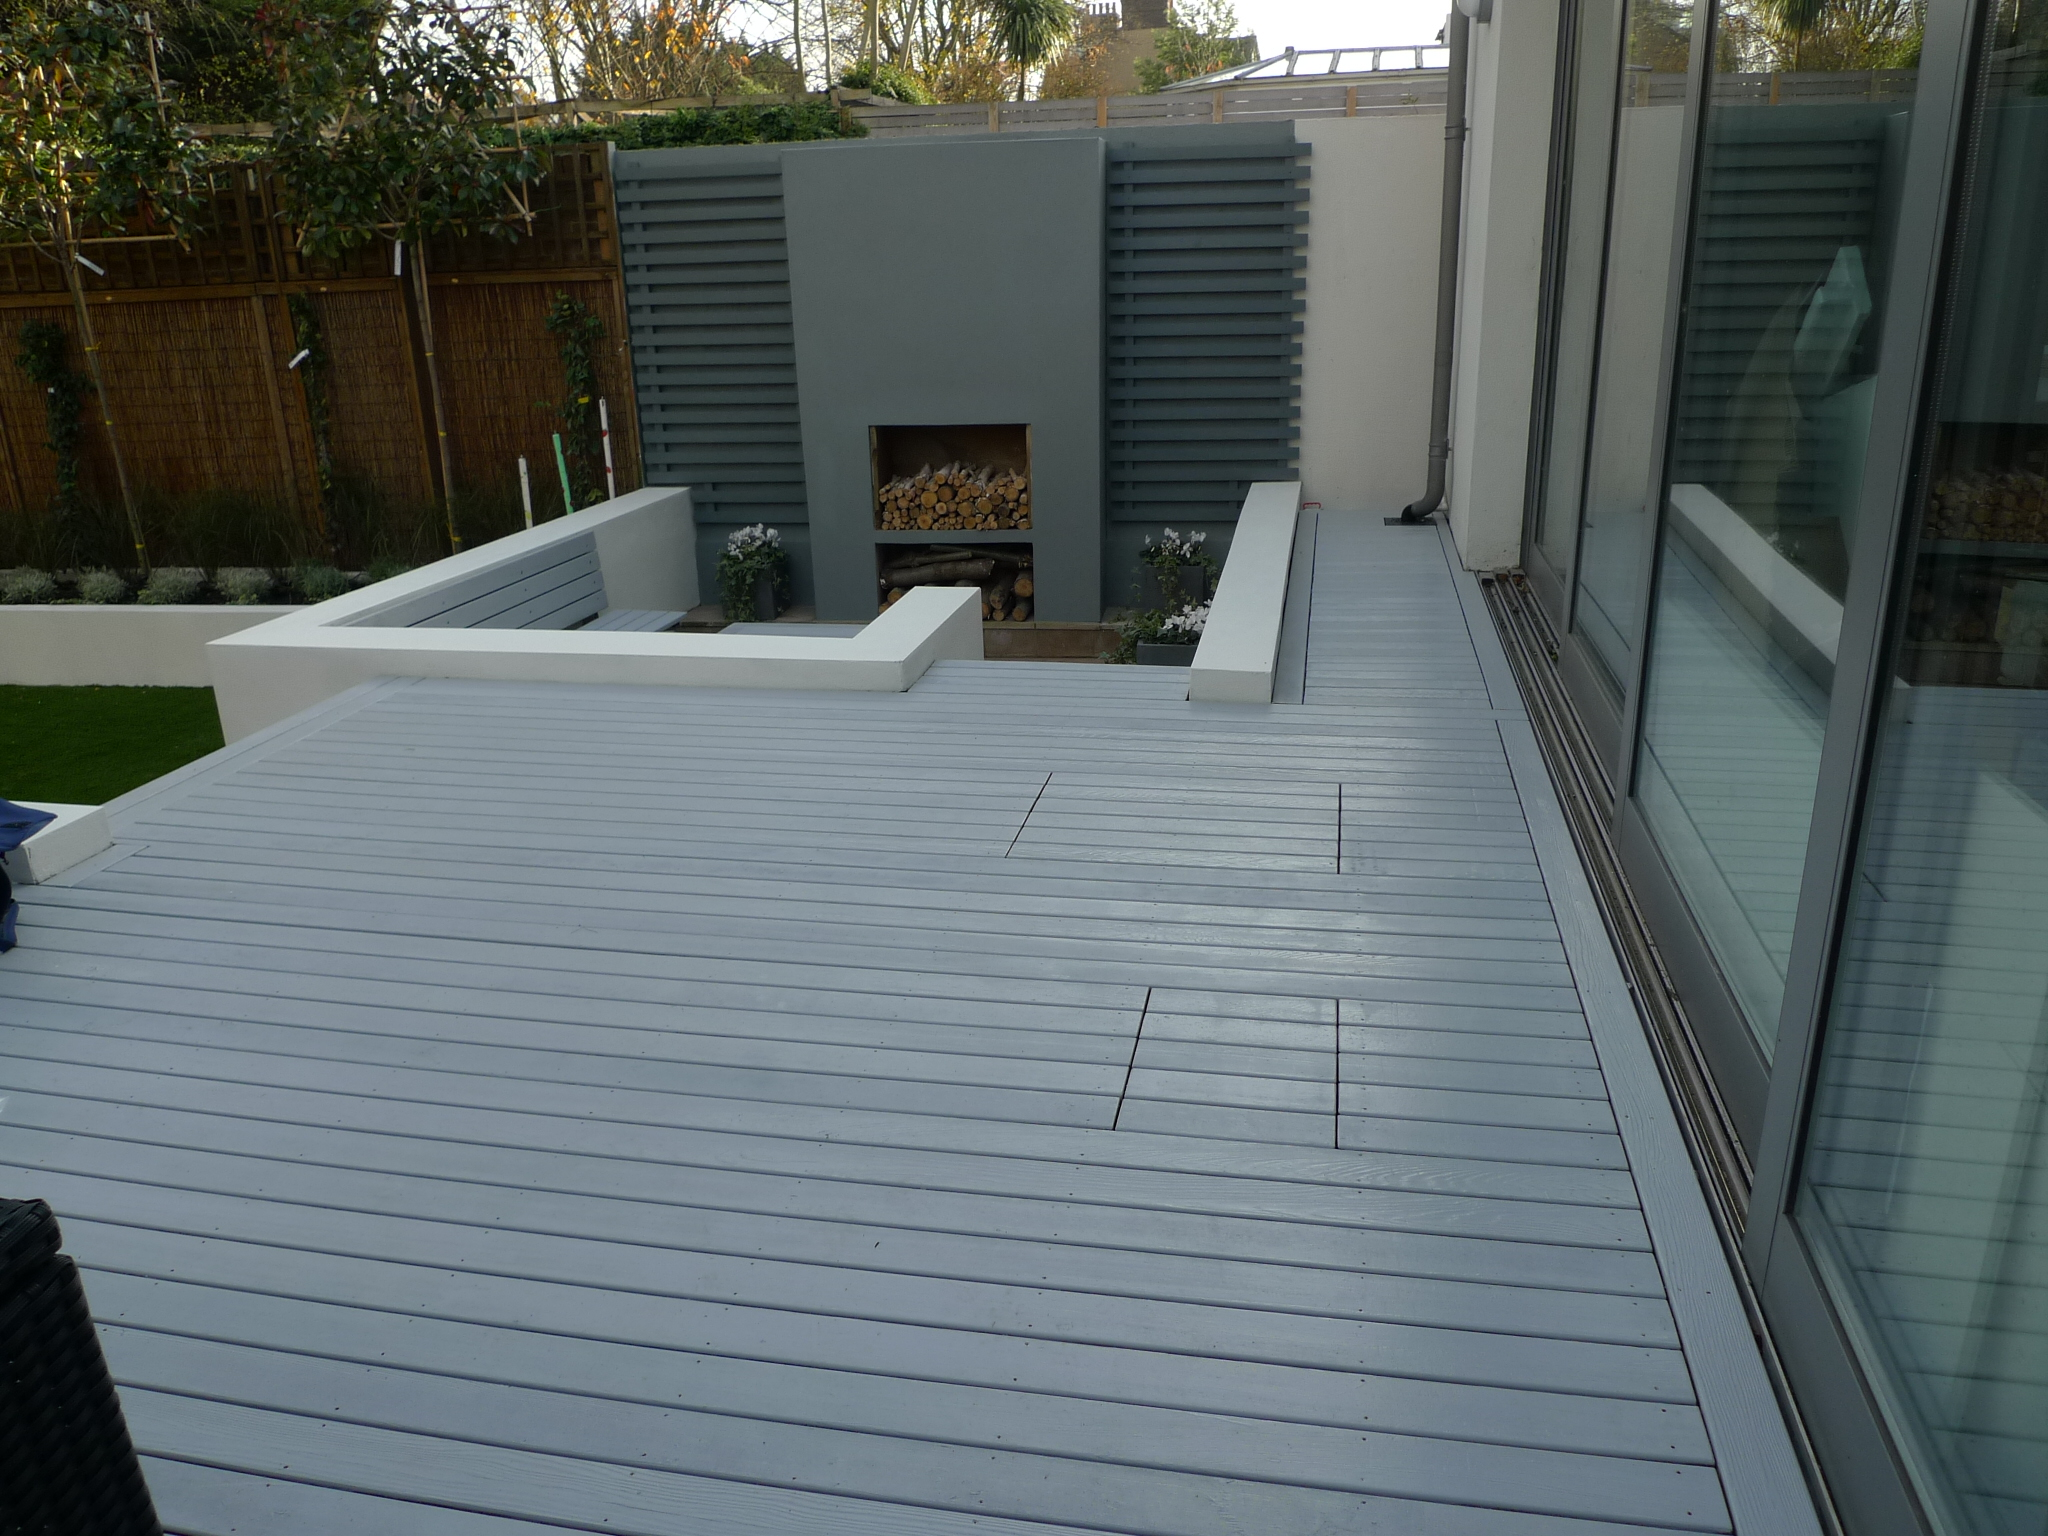 modern sleak garden low maintenance high impact garden design raised white wall beds grey decking ea